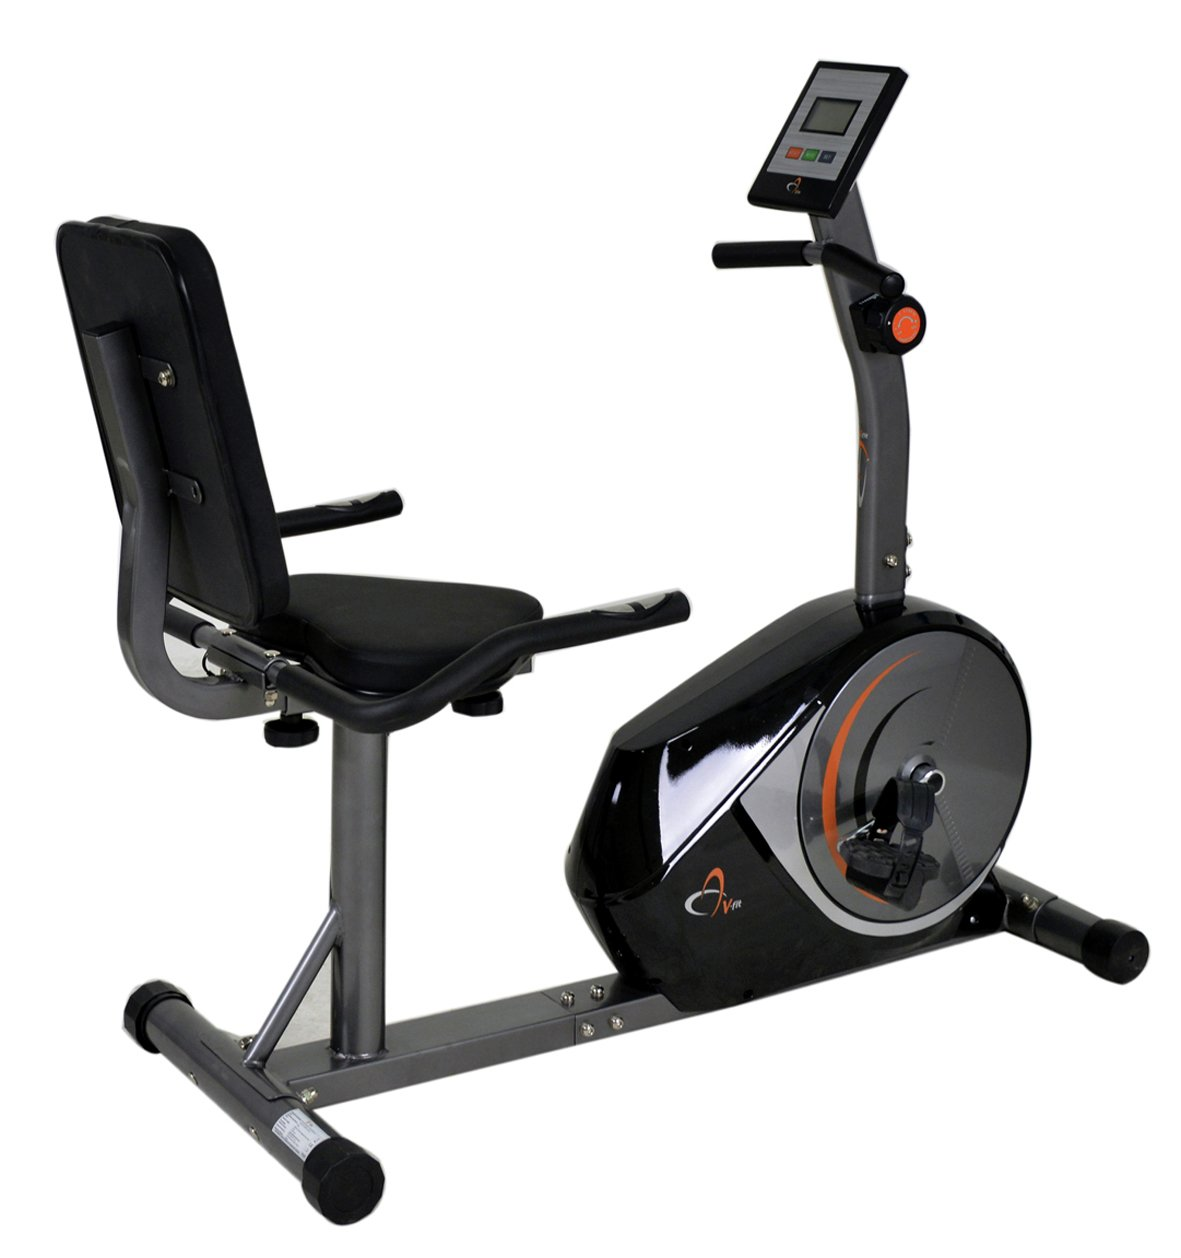 V Fit Cy090 Manual Magnetic Recumbent Exercise Bike